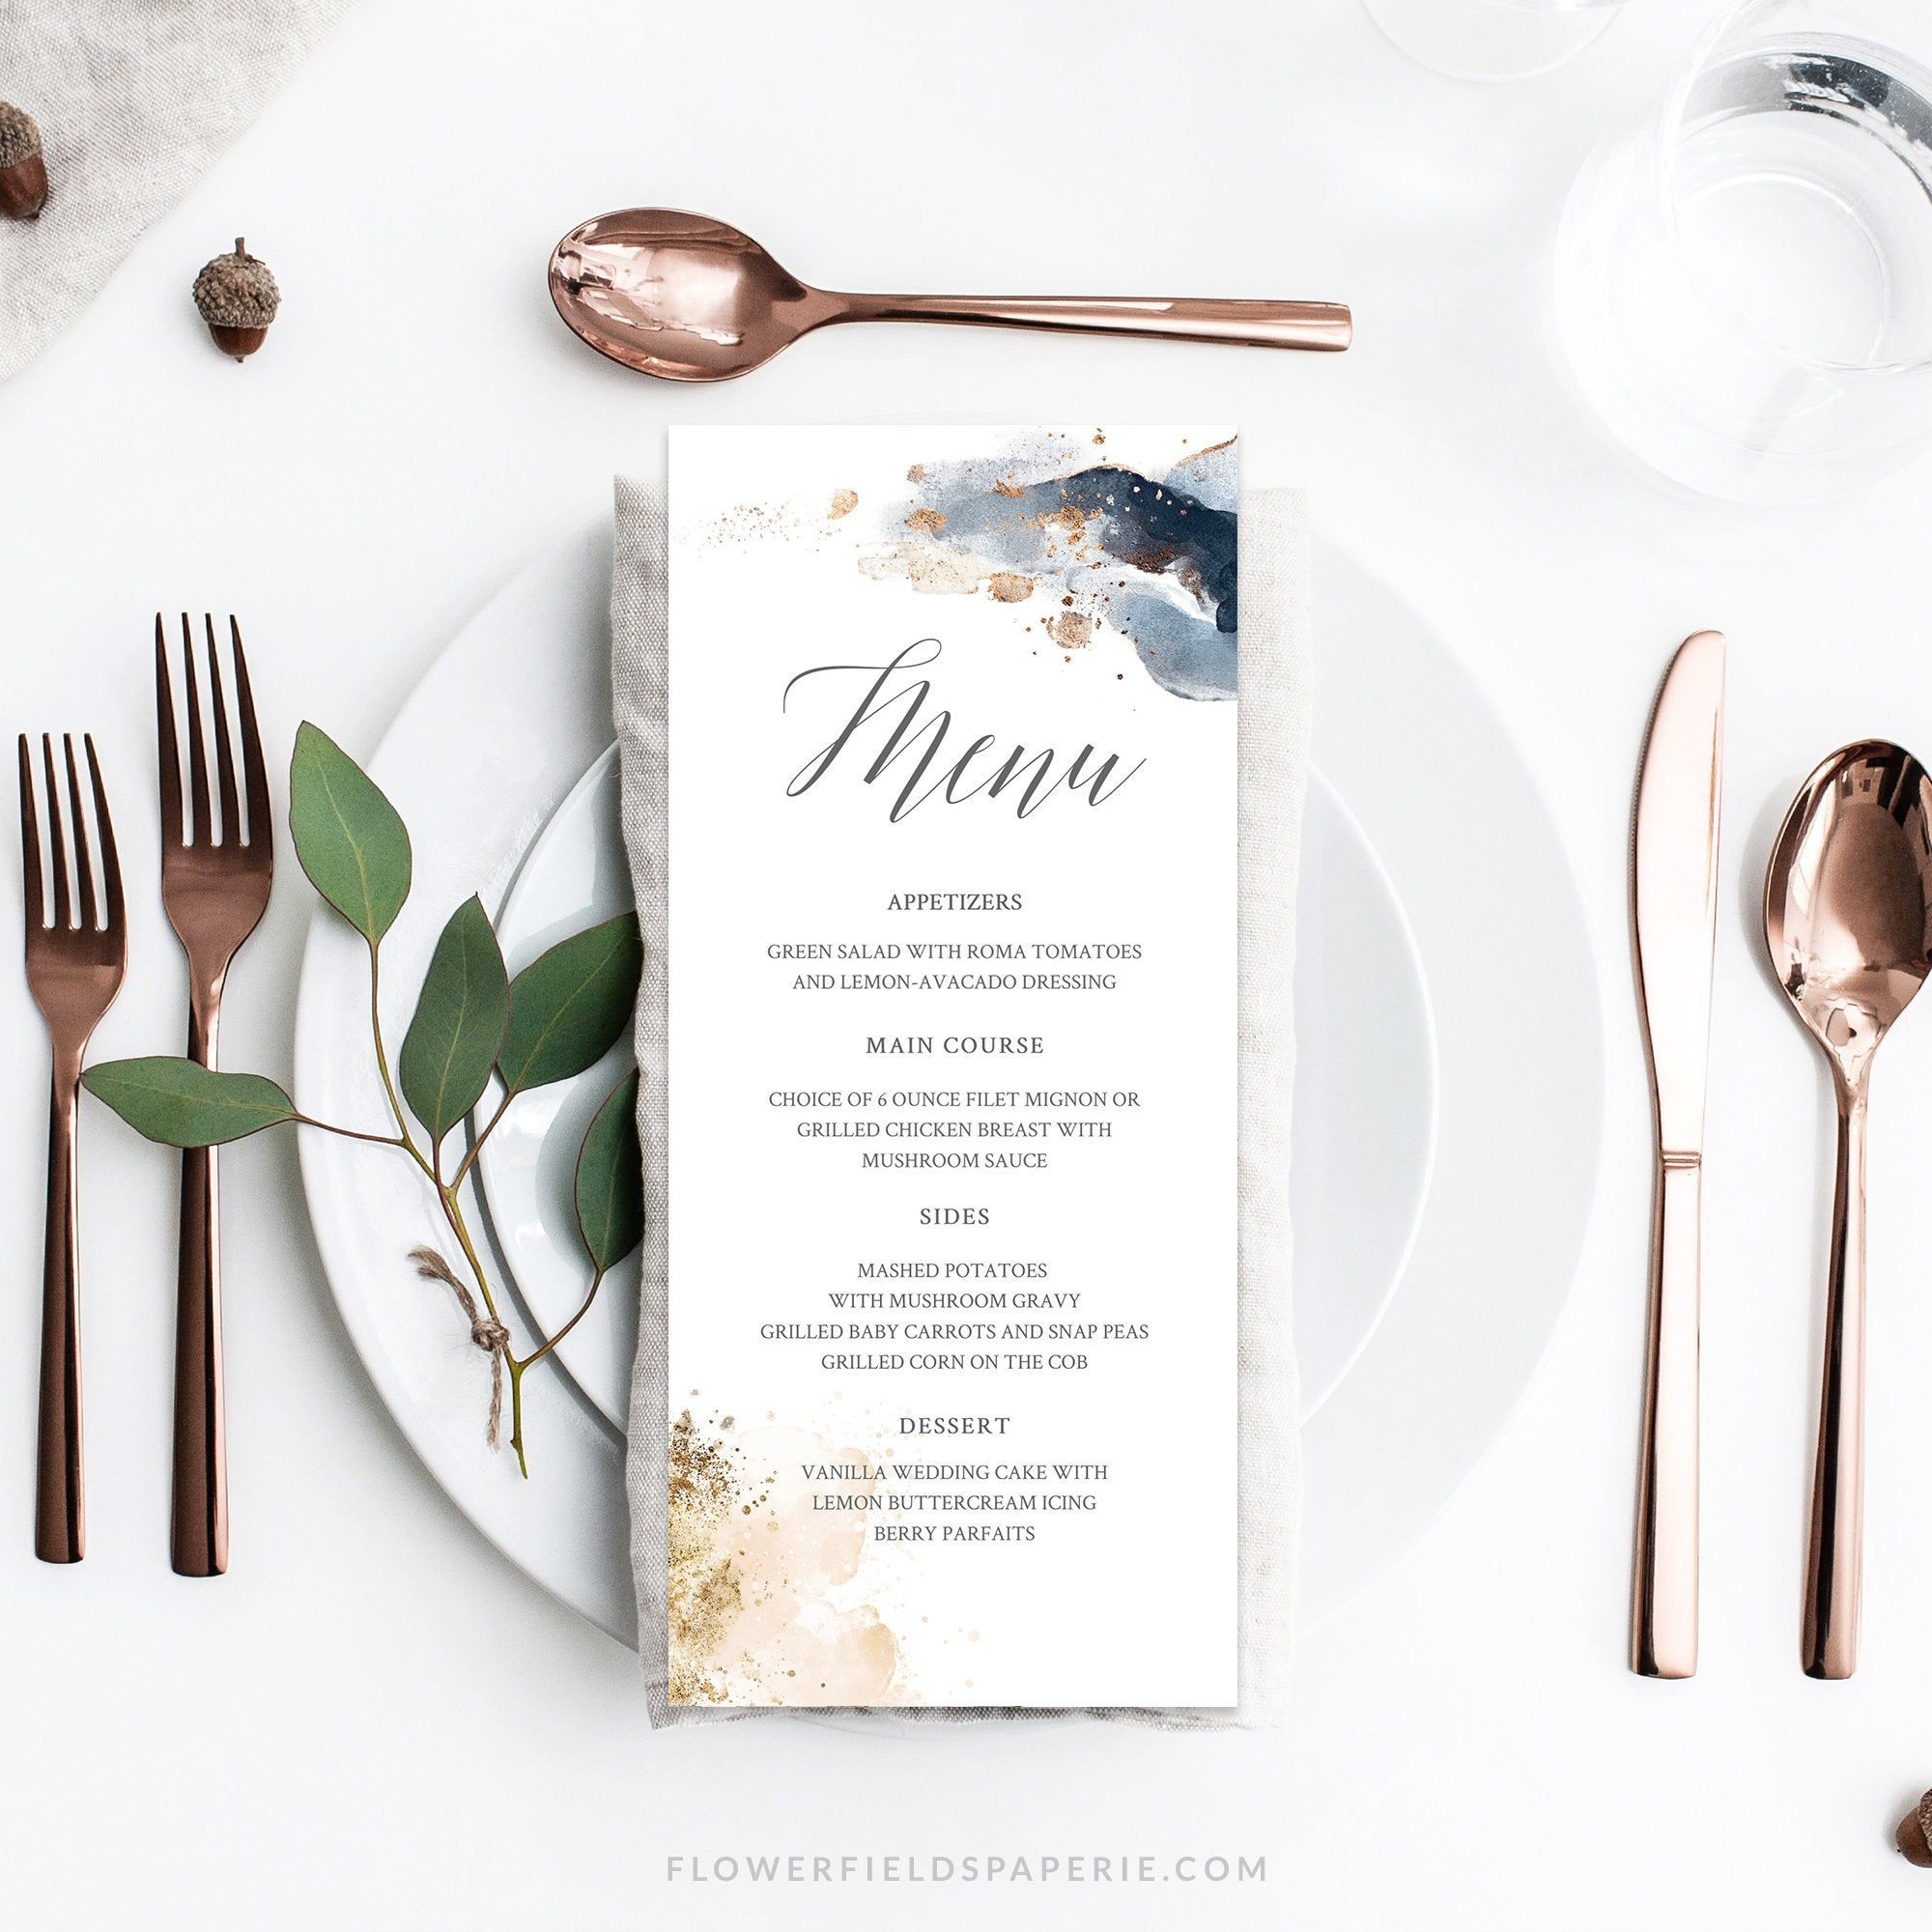 Wedding Menu Template, Wedding Dinner Menu, Navy Blush and Gold Reception Card Printable, Luxury Watercolor Wedding Menu Template #023-119 #weddingmenutemplate